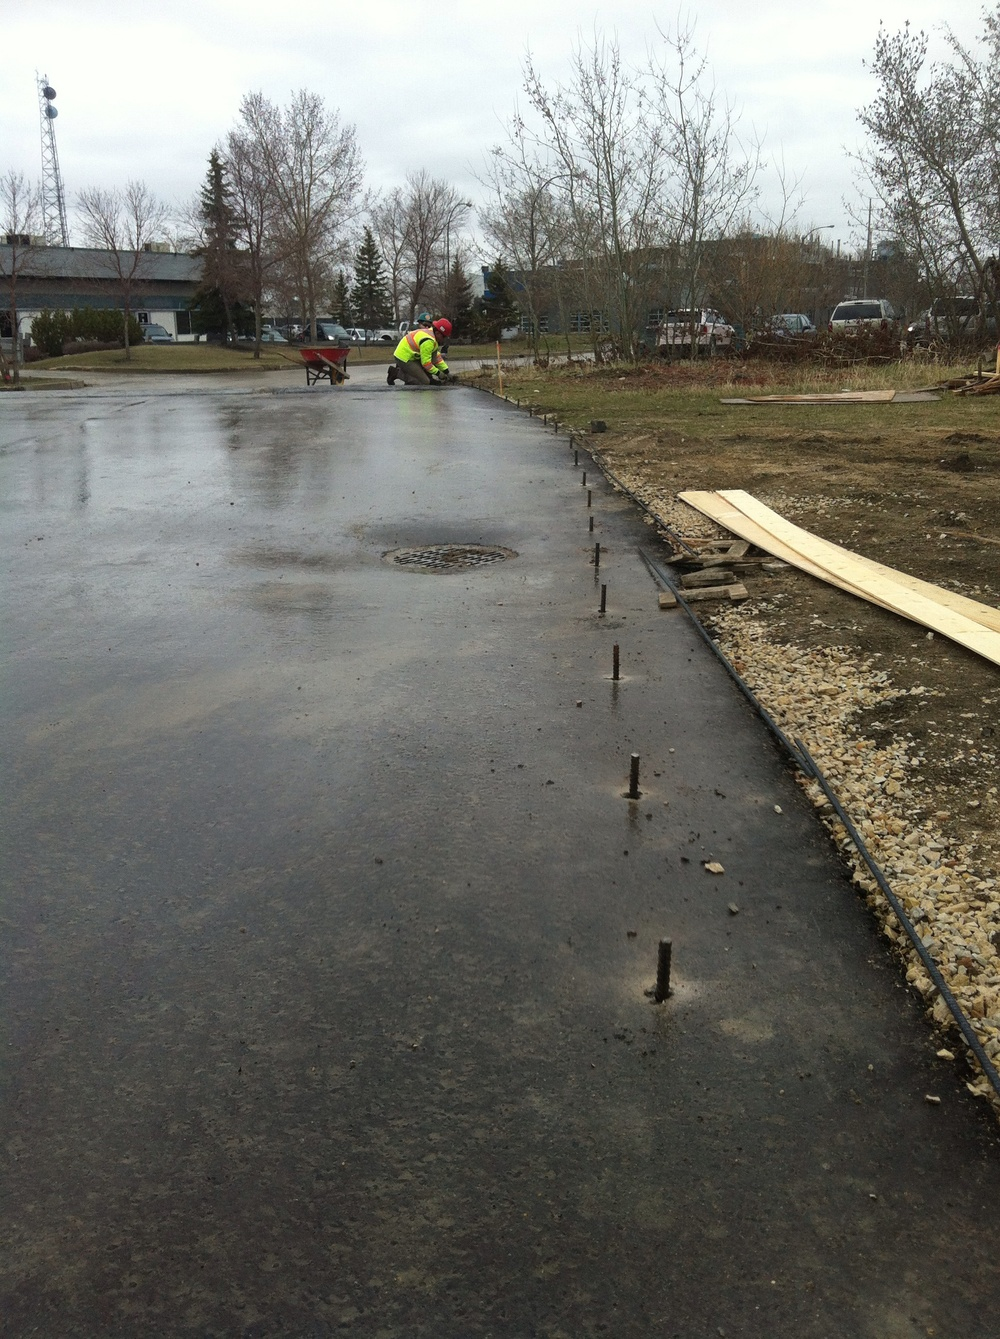 Rebar pins installed to reinforce the concrete curbs.